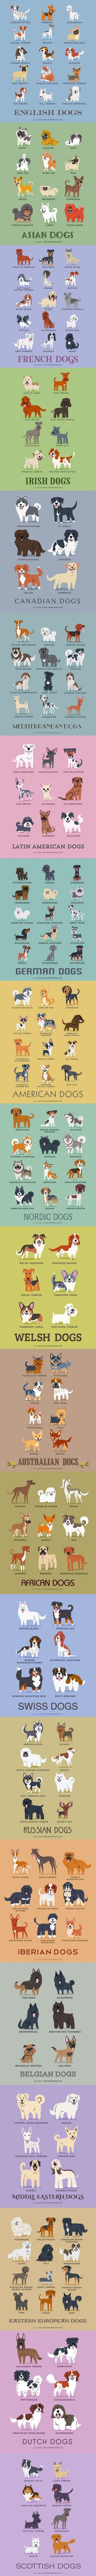 Cool list of various dog breeds from all over the world. Cool if you want to know where your favorite breed originated. :)